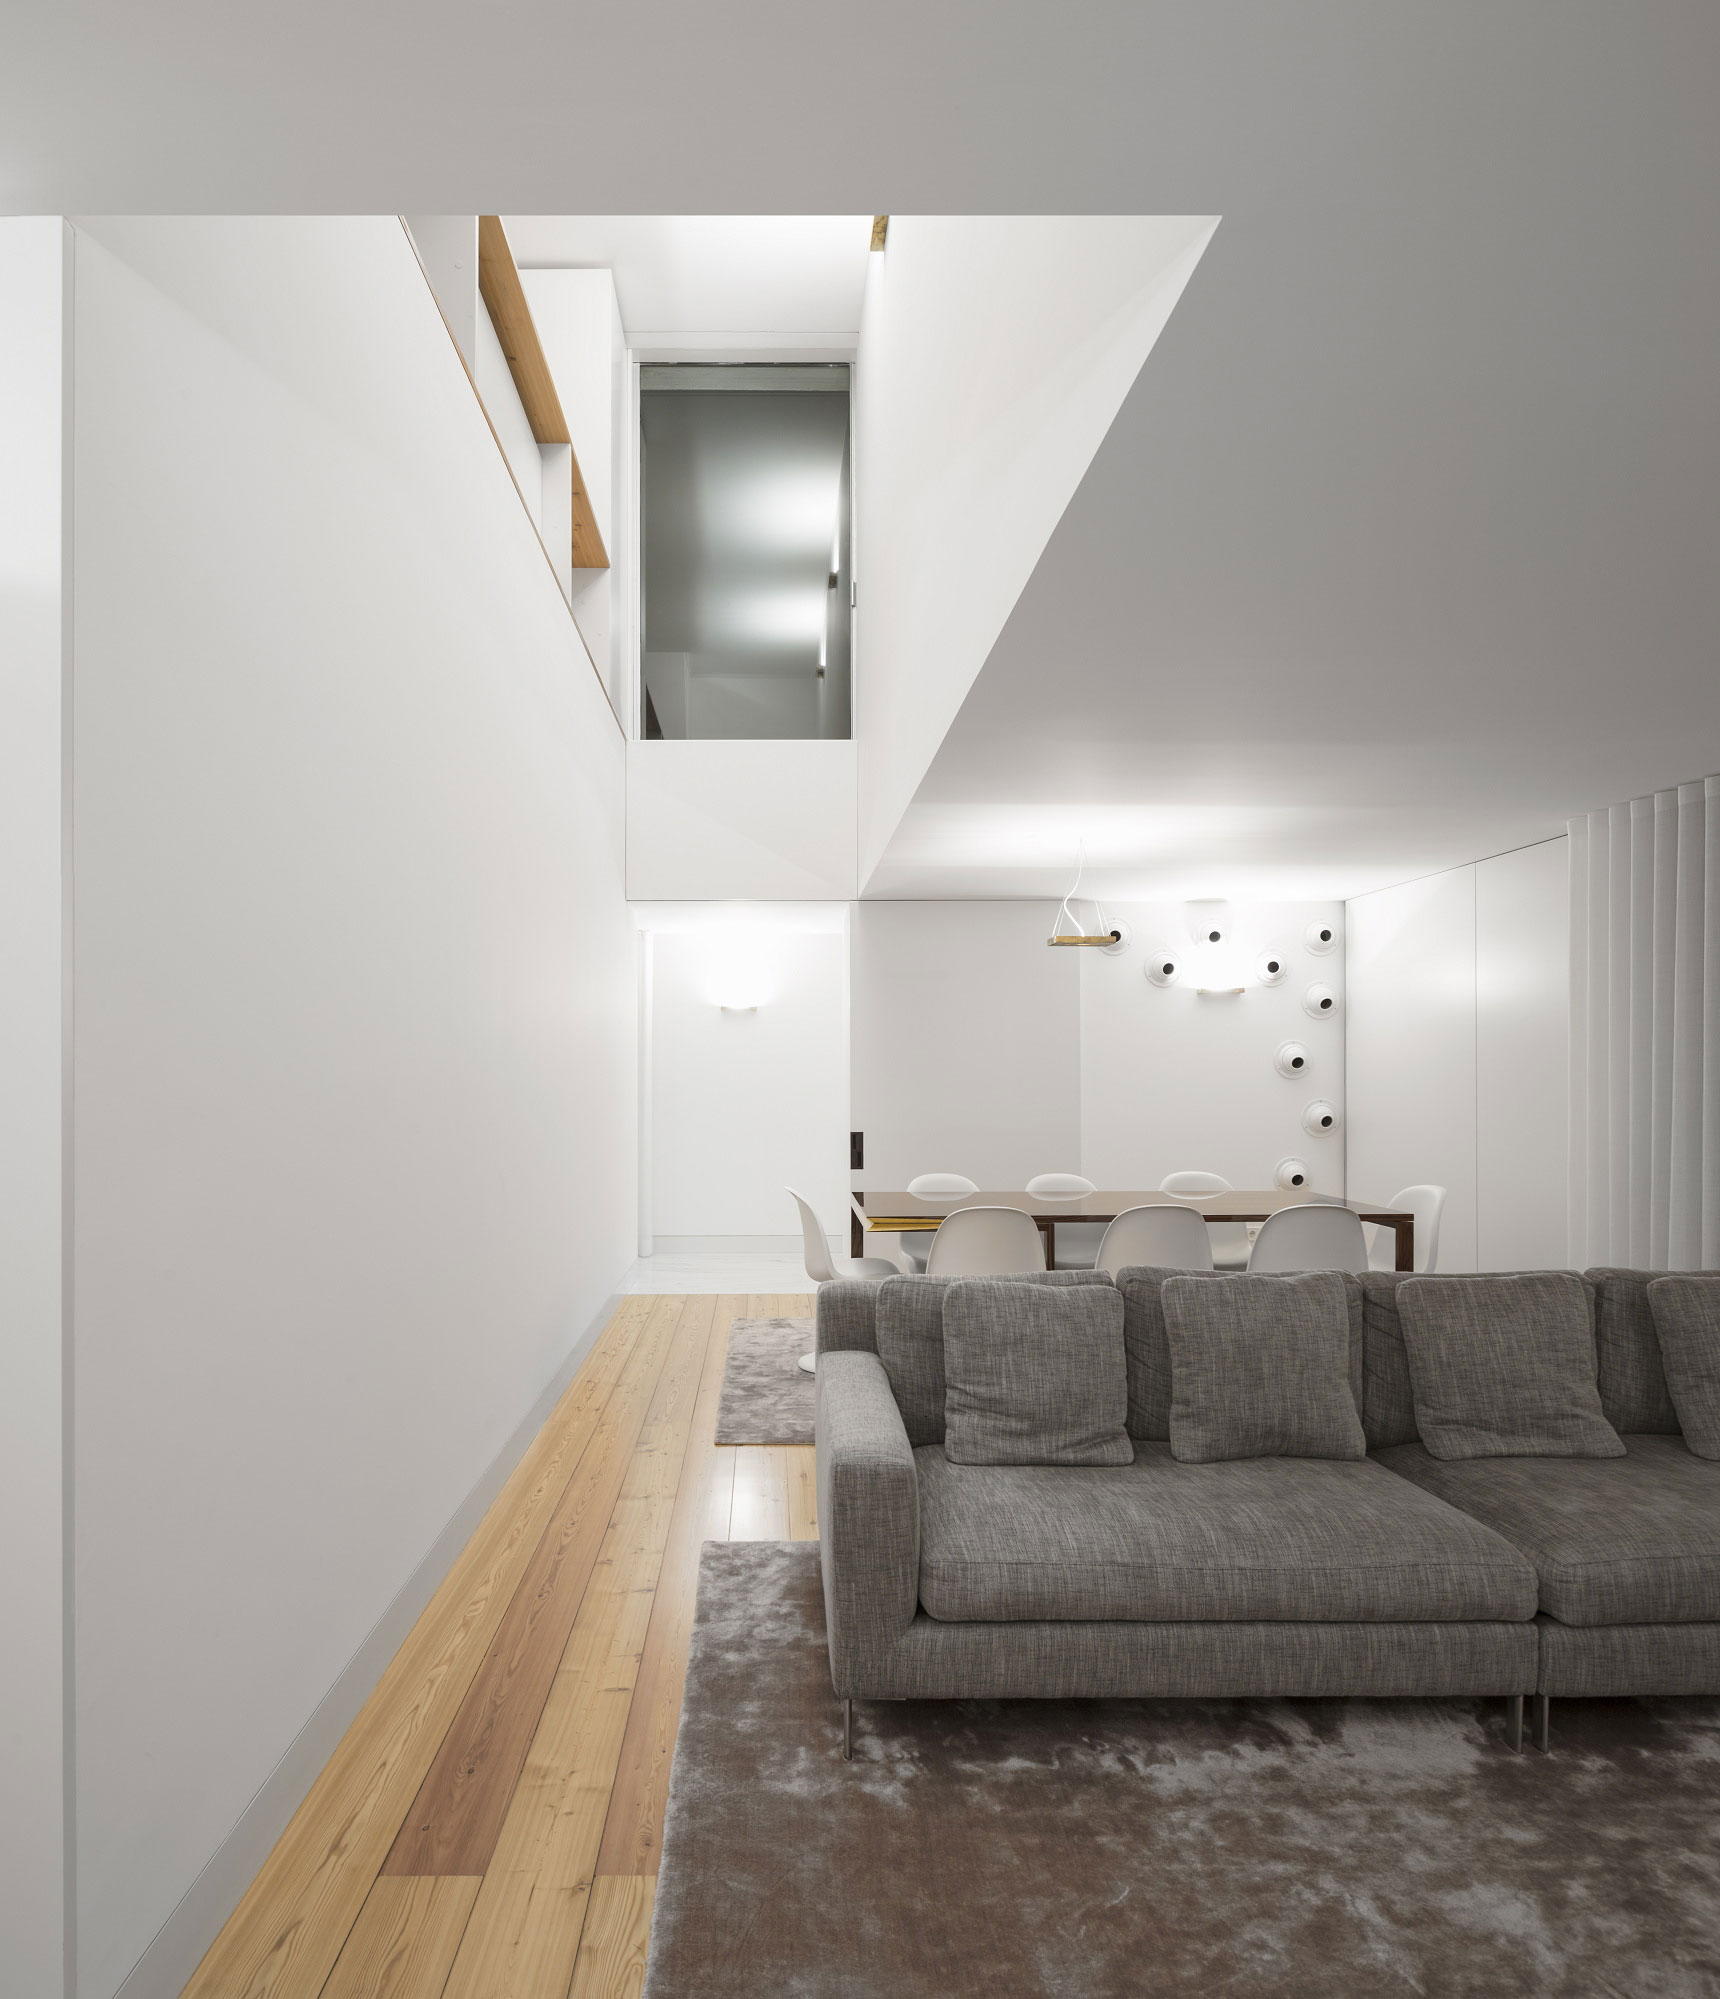 living-and-dining-room-large-modern-house-design-with-white-interior-color-decorating-ideas-plus-sofa-bed-wooden-table-and-chairs